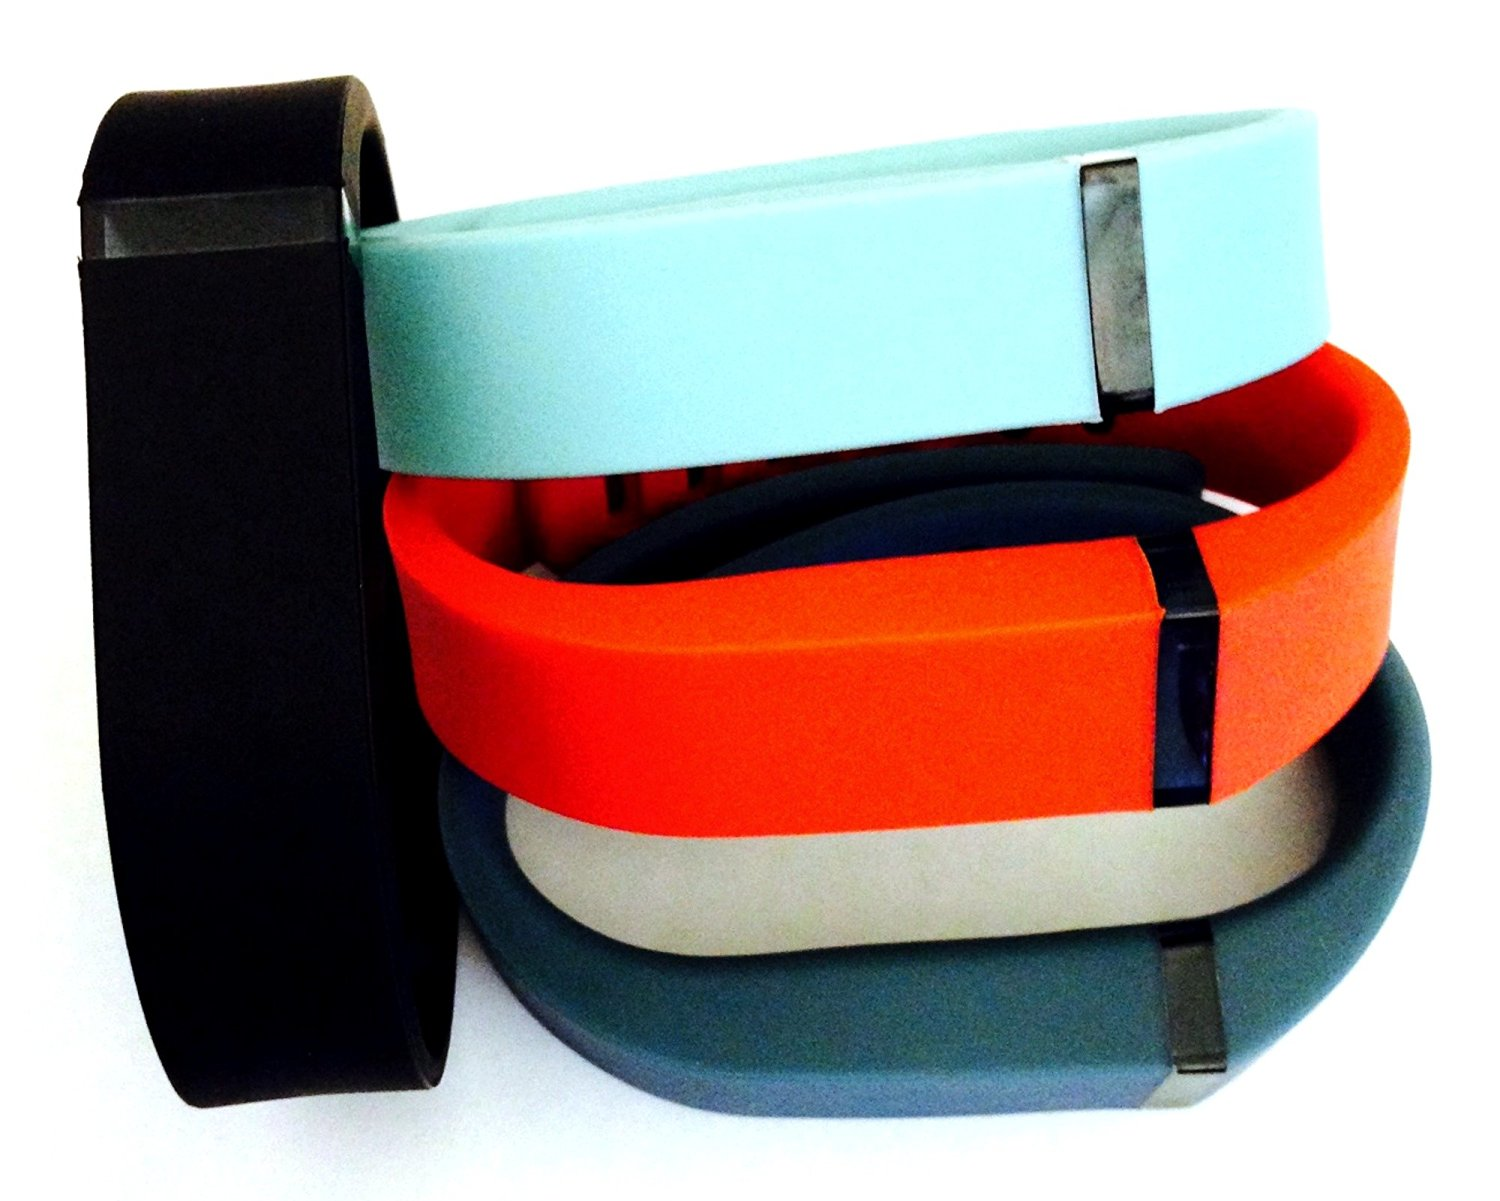 ! Small S 1pc Teal (Blue/Grey) 1pc Black 1pc Red (Tangerine) 1pc Slate (Blue/Grey) Replacement Bands + 1pc Free Small Grey Band With Clasp for Fitbit FLEX Only /No tracker/ Wireless Activity Bracelet Sport Wristband Fit Bit Flex Bracelet Sport Arm Band Armband